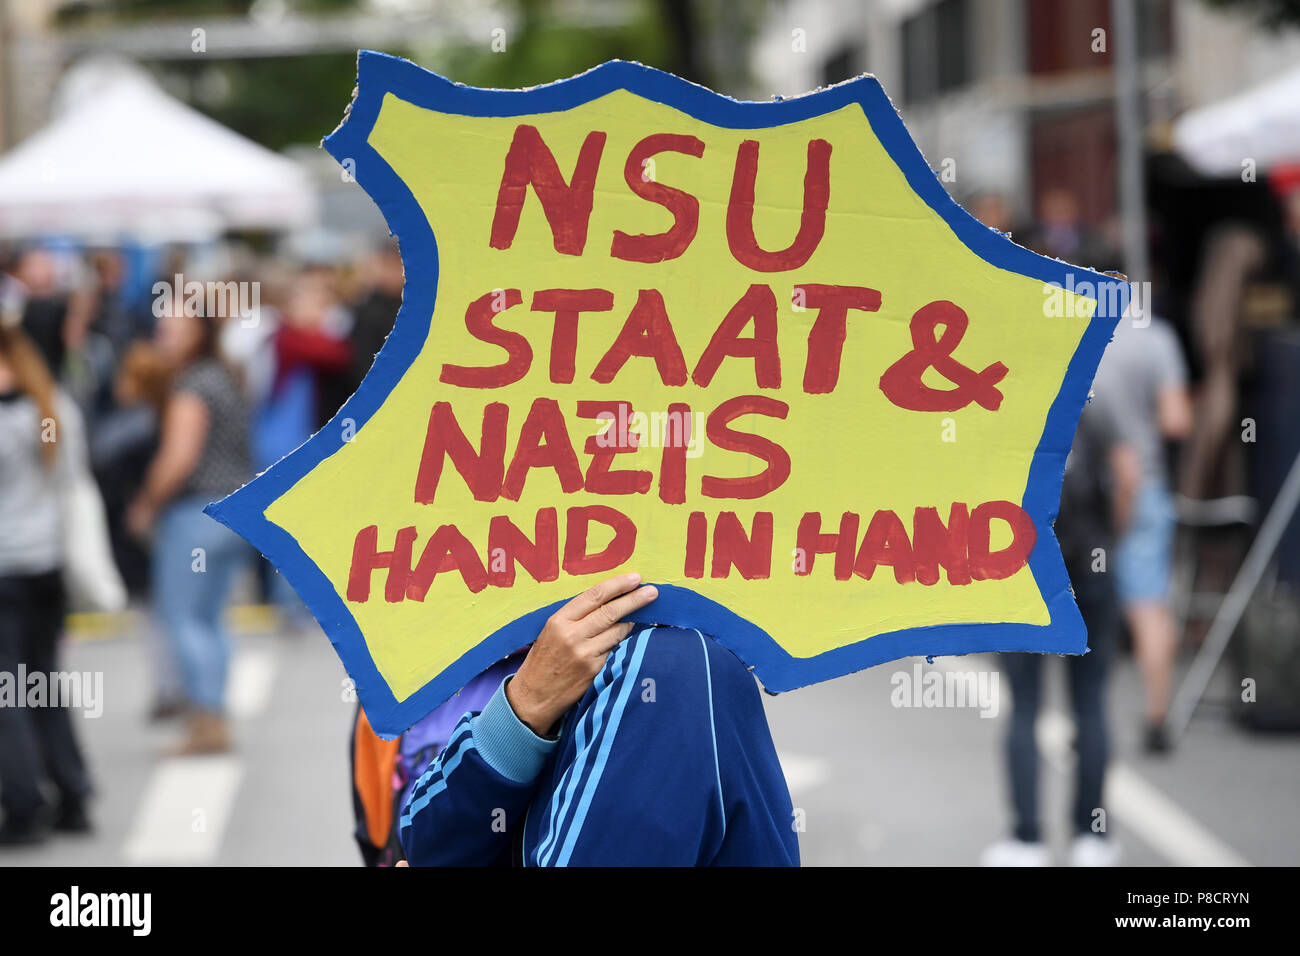 """Germany, Munich. 11th July, 2018. Demonstrators hold a sign saying """"NSU State & Nazis hand in hand"""" at a rally in front of the Higher Regional Court. Today a verdict against Zschaepe will be announced at the National Socialist Underground trial. The so called National Socialist Underground terrorist group has killed 10 people in Germany in the years 2000 to 2007. Credit: Tobias Hase/dpa/Alamy Live News Stock Photo"""